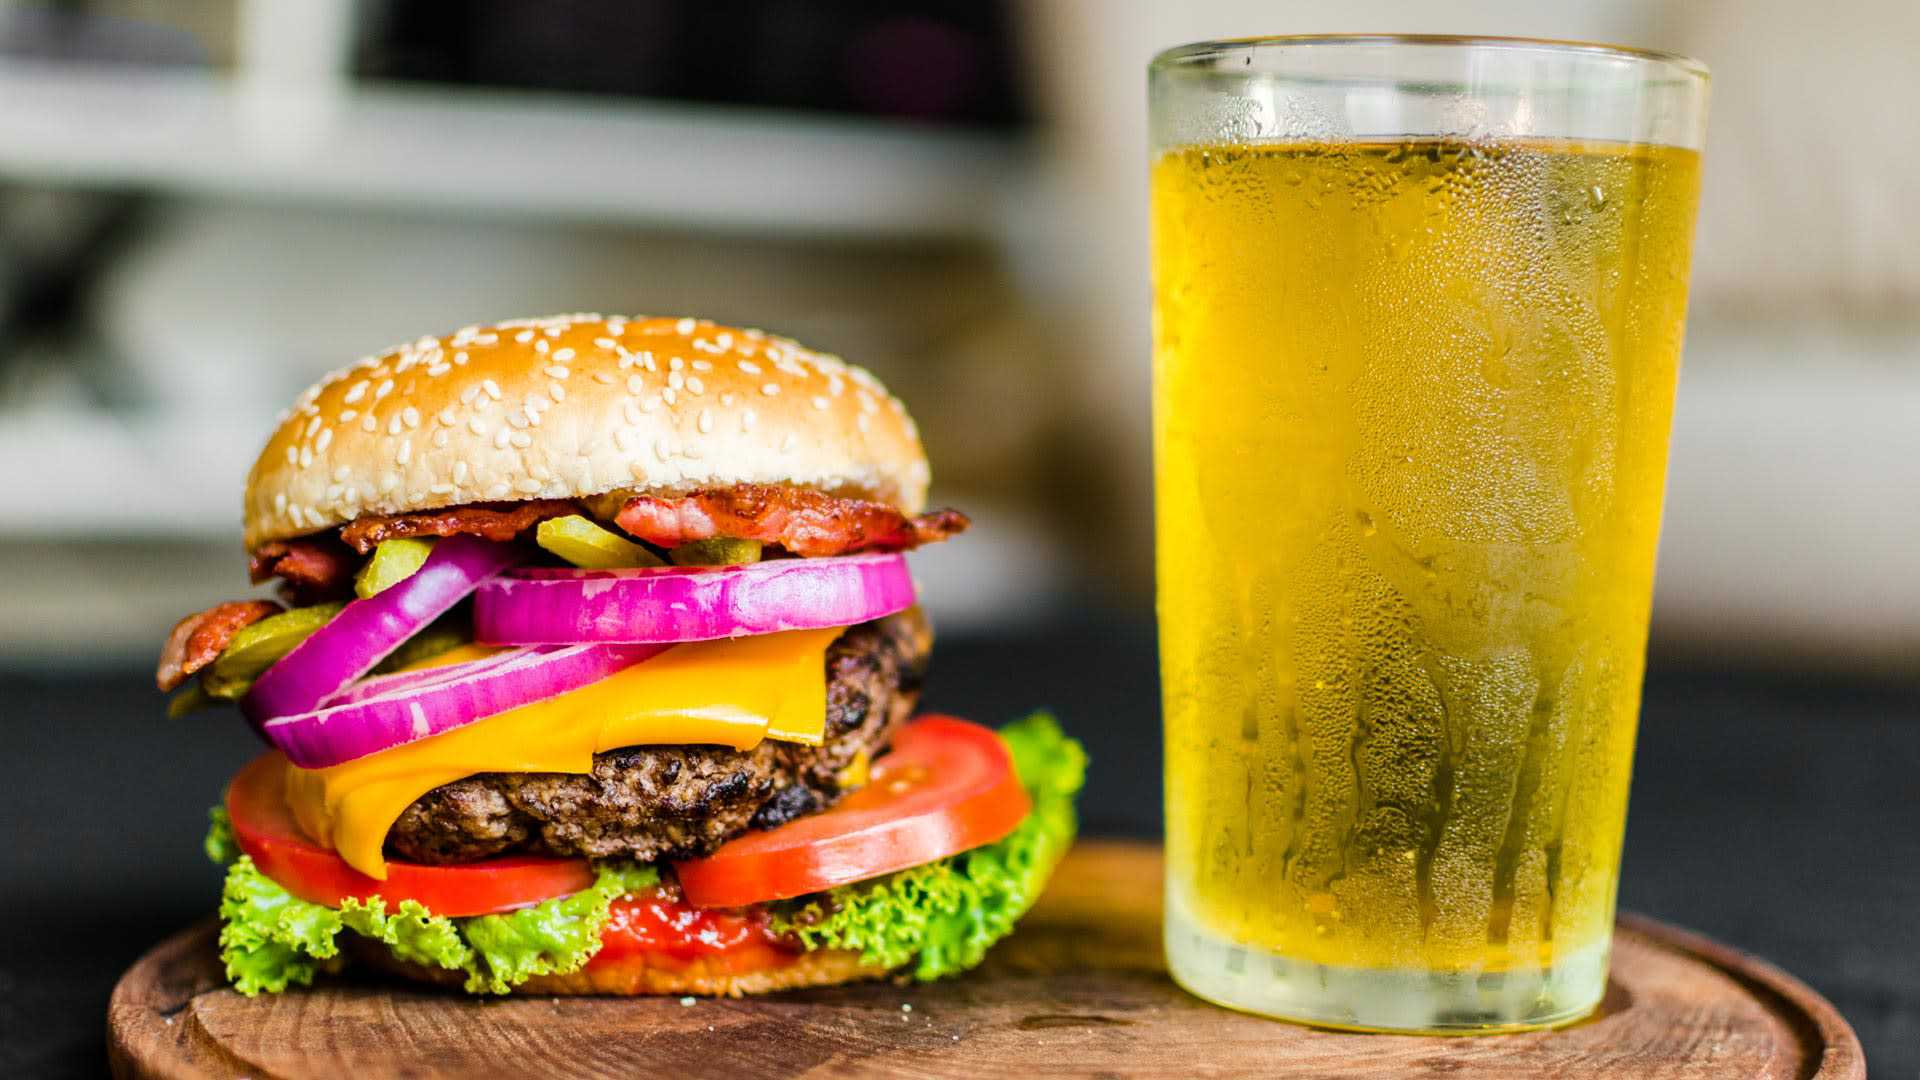 Loaded cheeseburger and beer from Rock Bottom Restaurant & Brewery